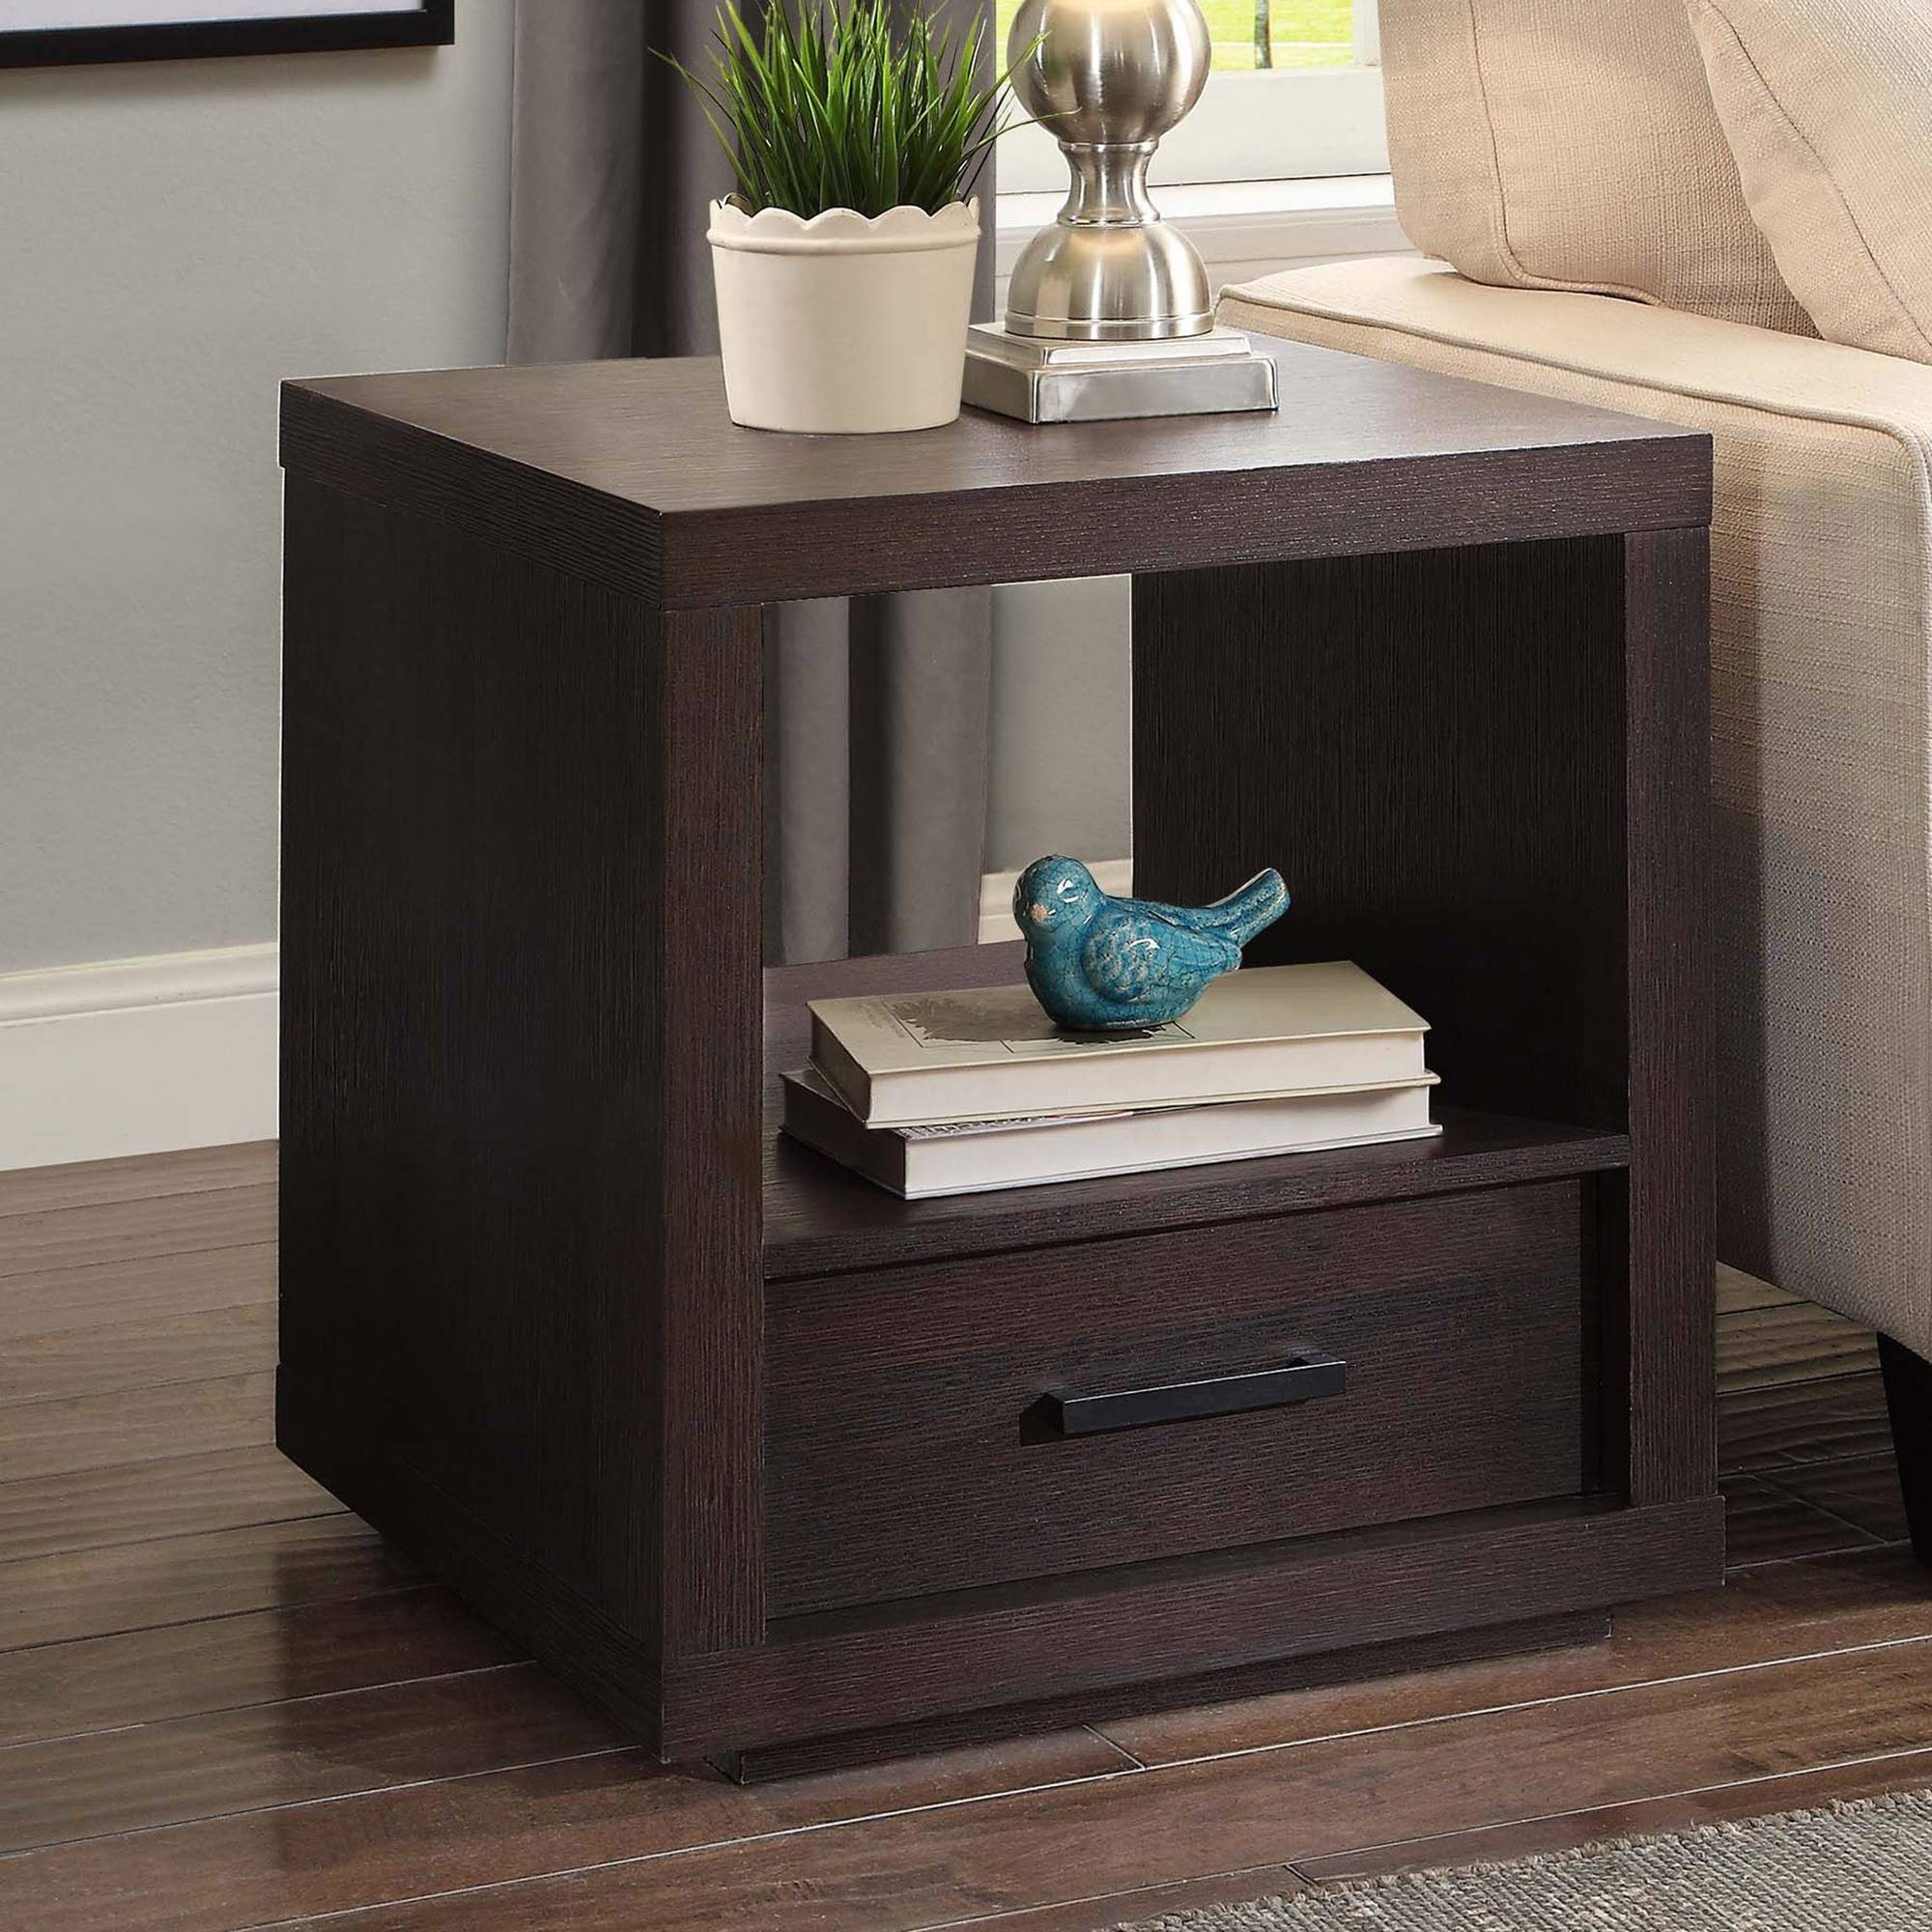 Better Homes and Garden Steele End Table, Espresso Finish by WHALEN LIMITED